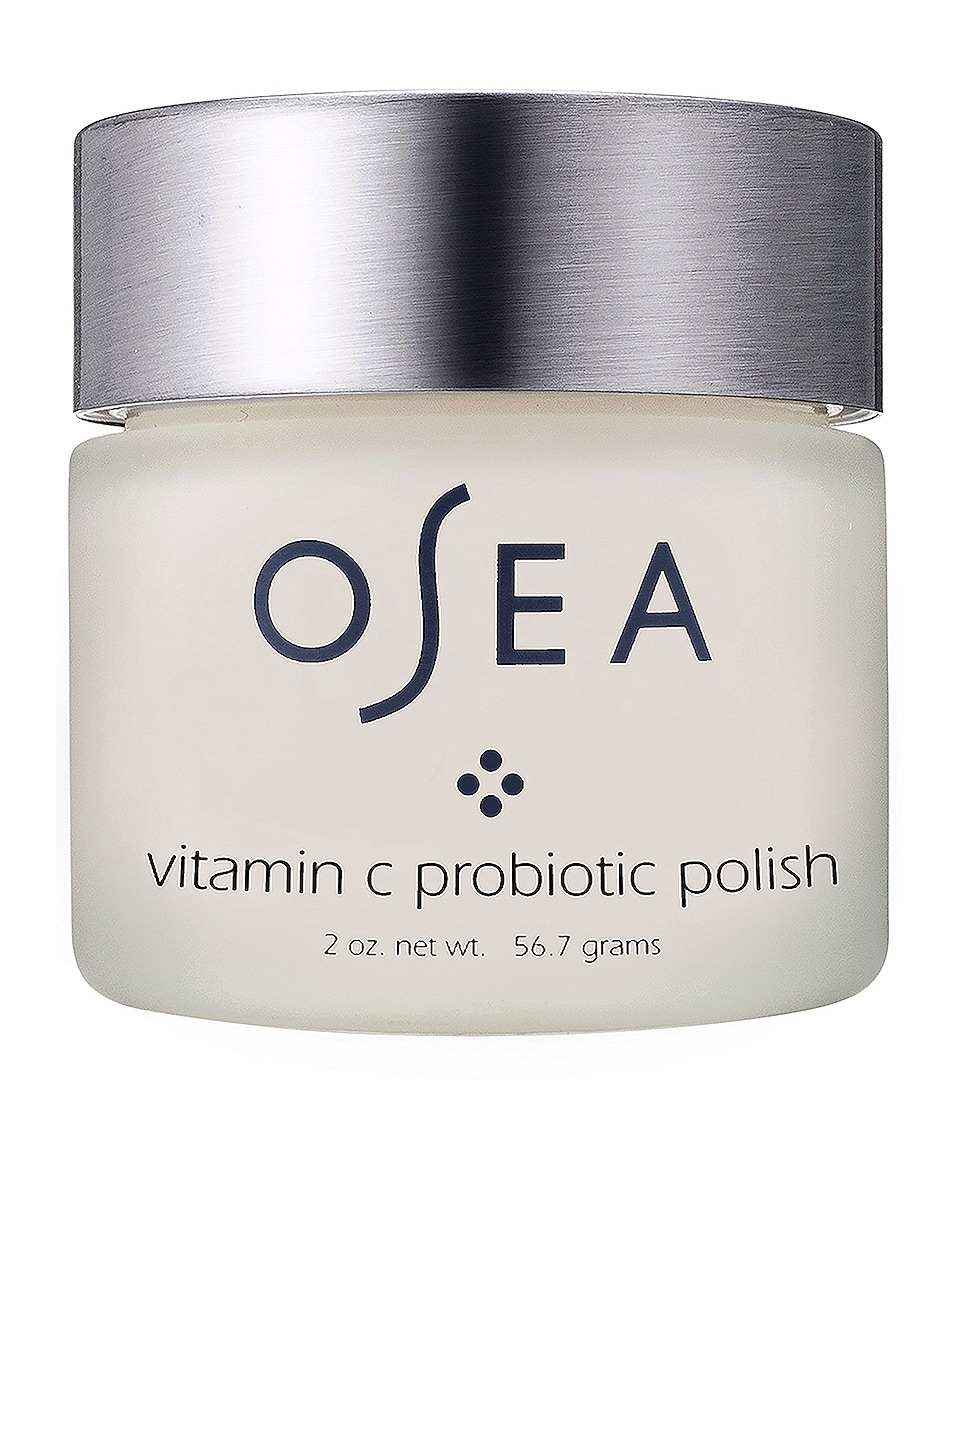 OSEA Vitamin C Probiotic Face Polish